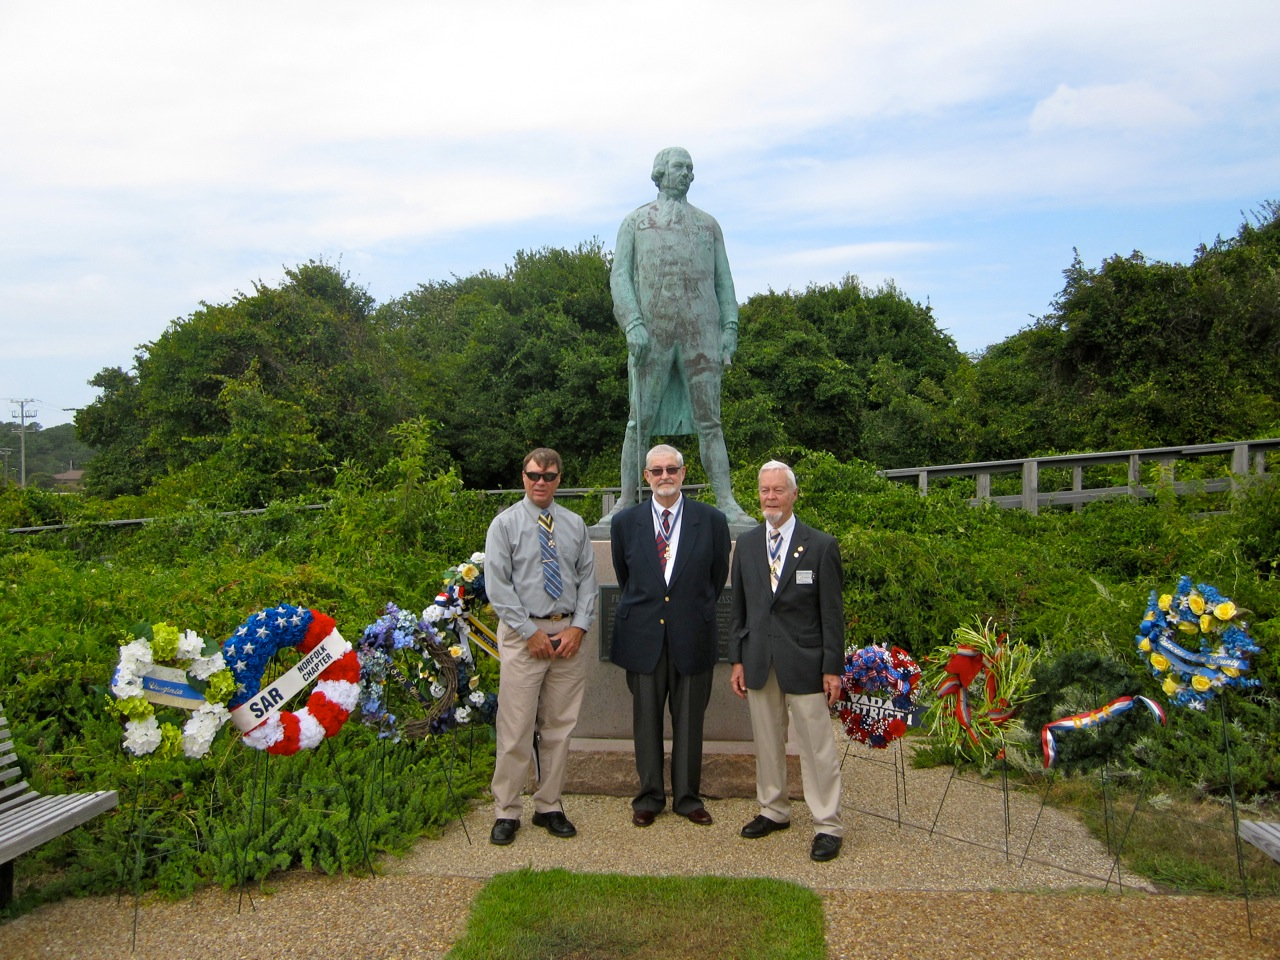 Thomas Nelson, Jr. Chapter SAR President Bruce Meyer, Norfolk Chapter SAR President Maury Weeks and Virginia State SAR President Reverdy Wright at the Admiral deGrasse Statue